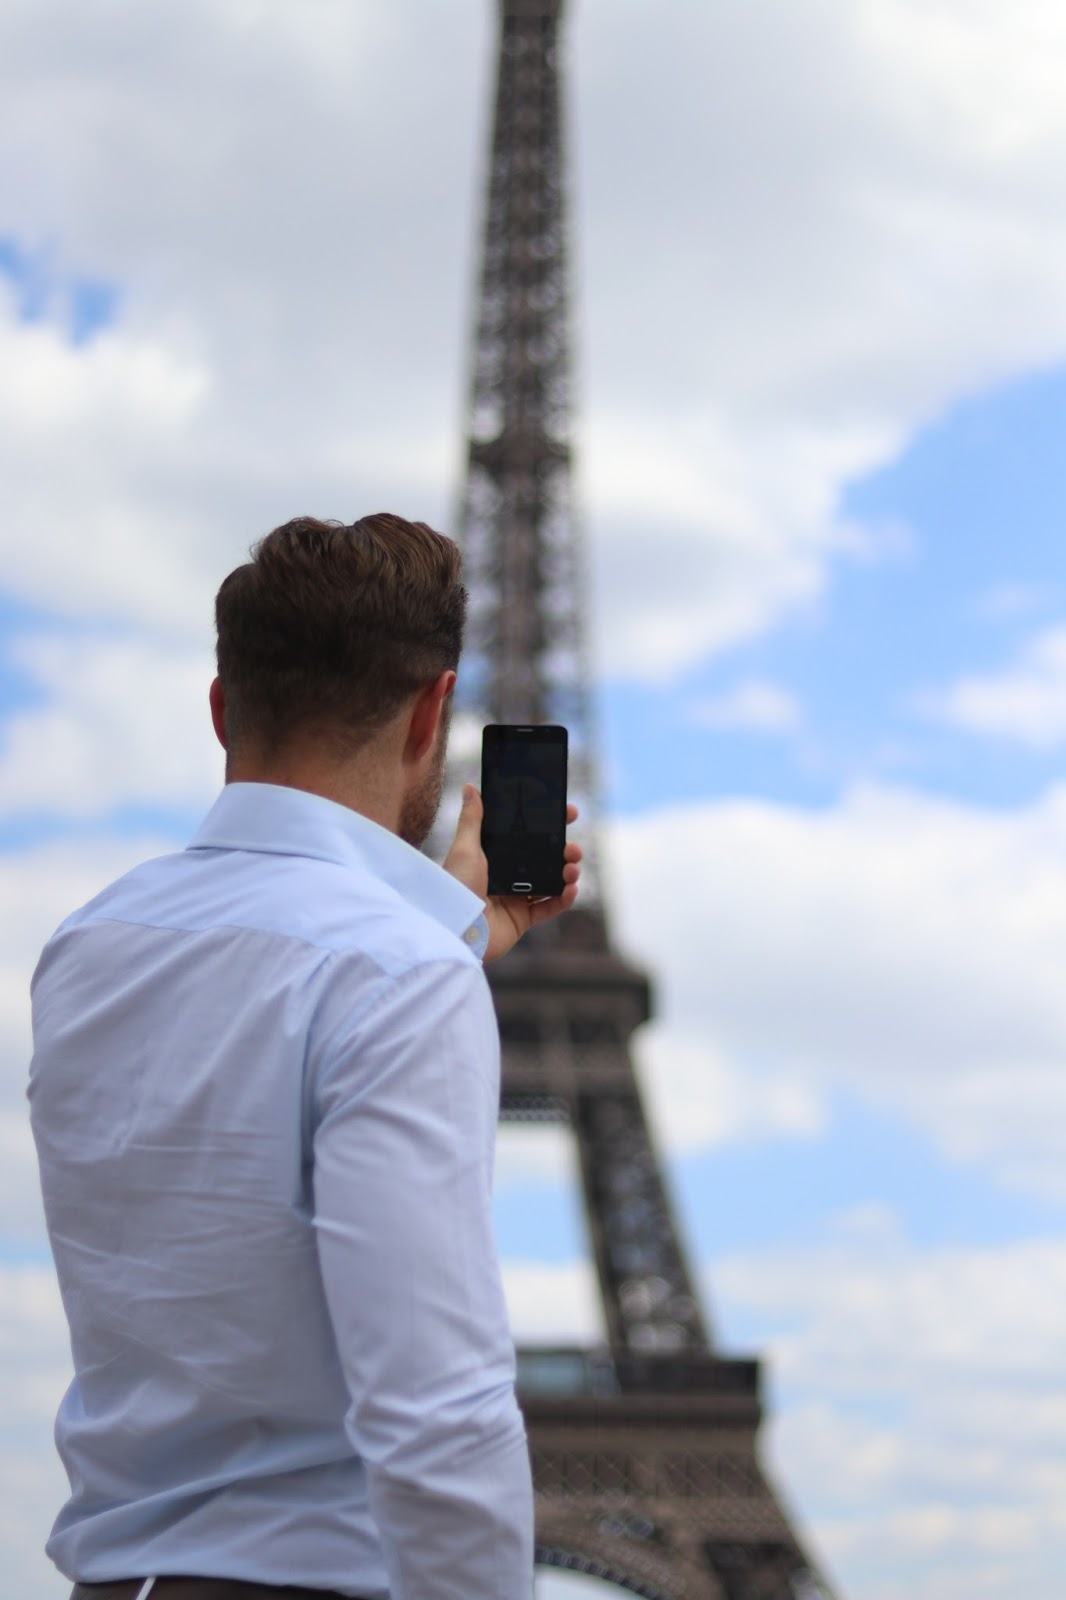 Ben Heath taking a photo of The Eiffel Tower, Paris, France